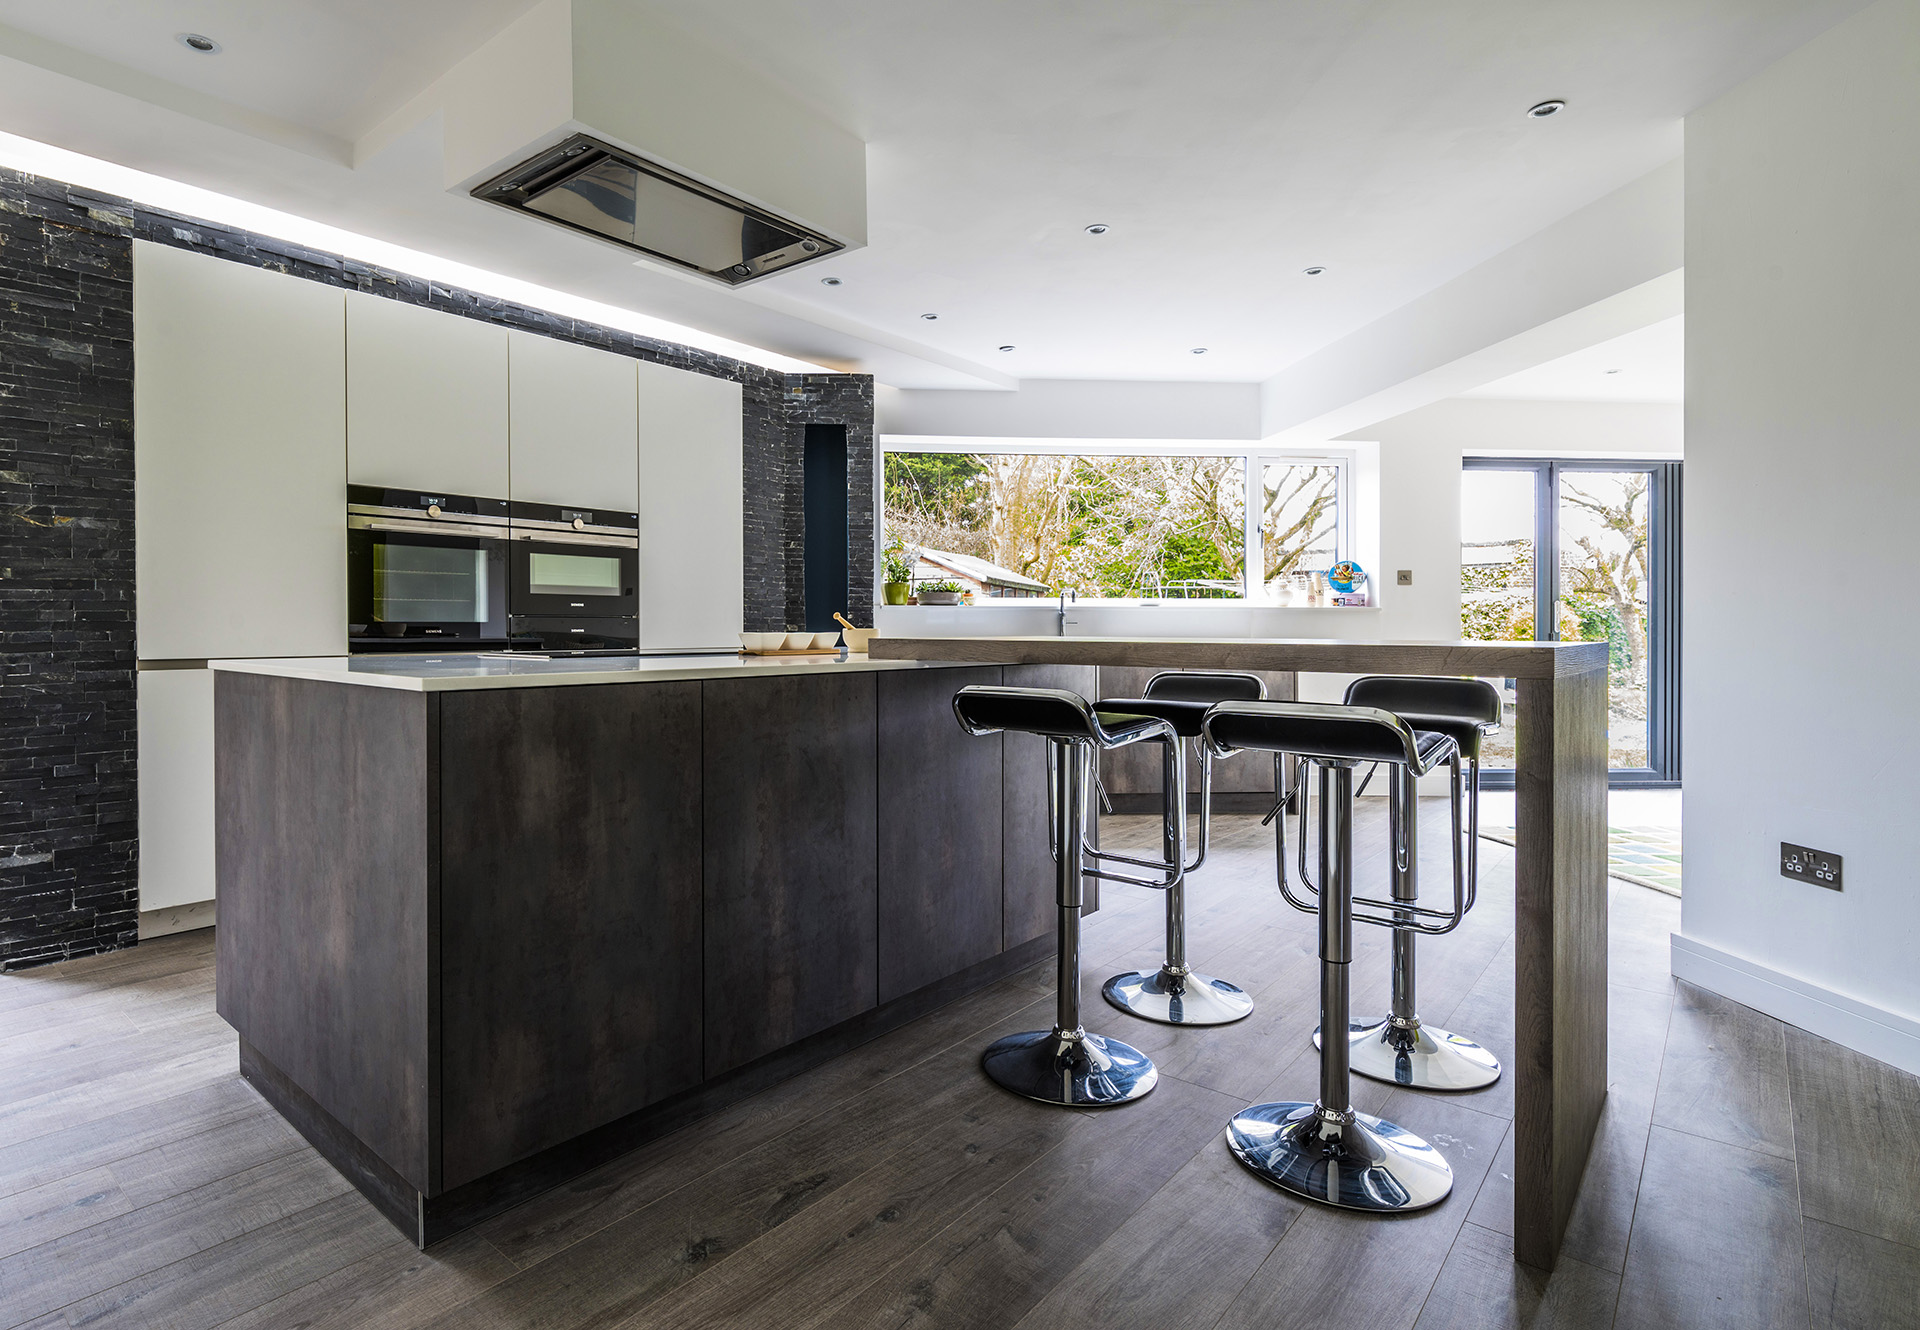 Luxury kitchen installation by trukitchen of wilmslow